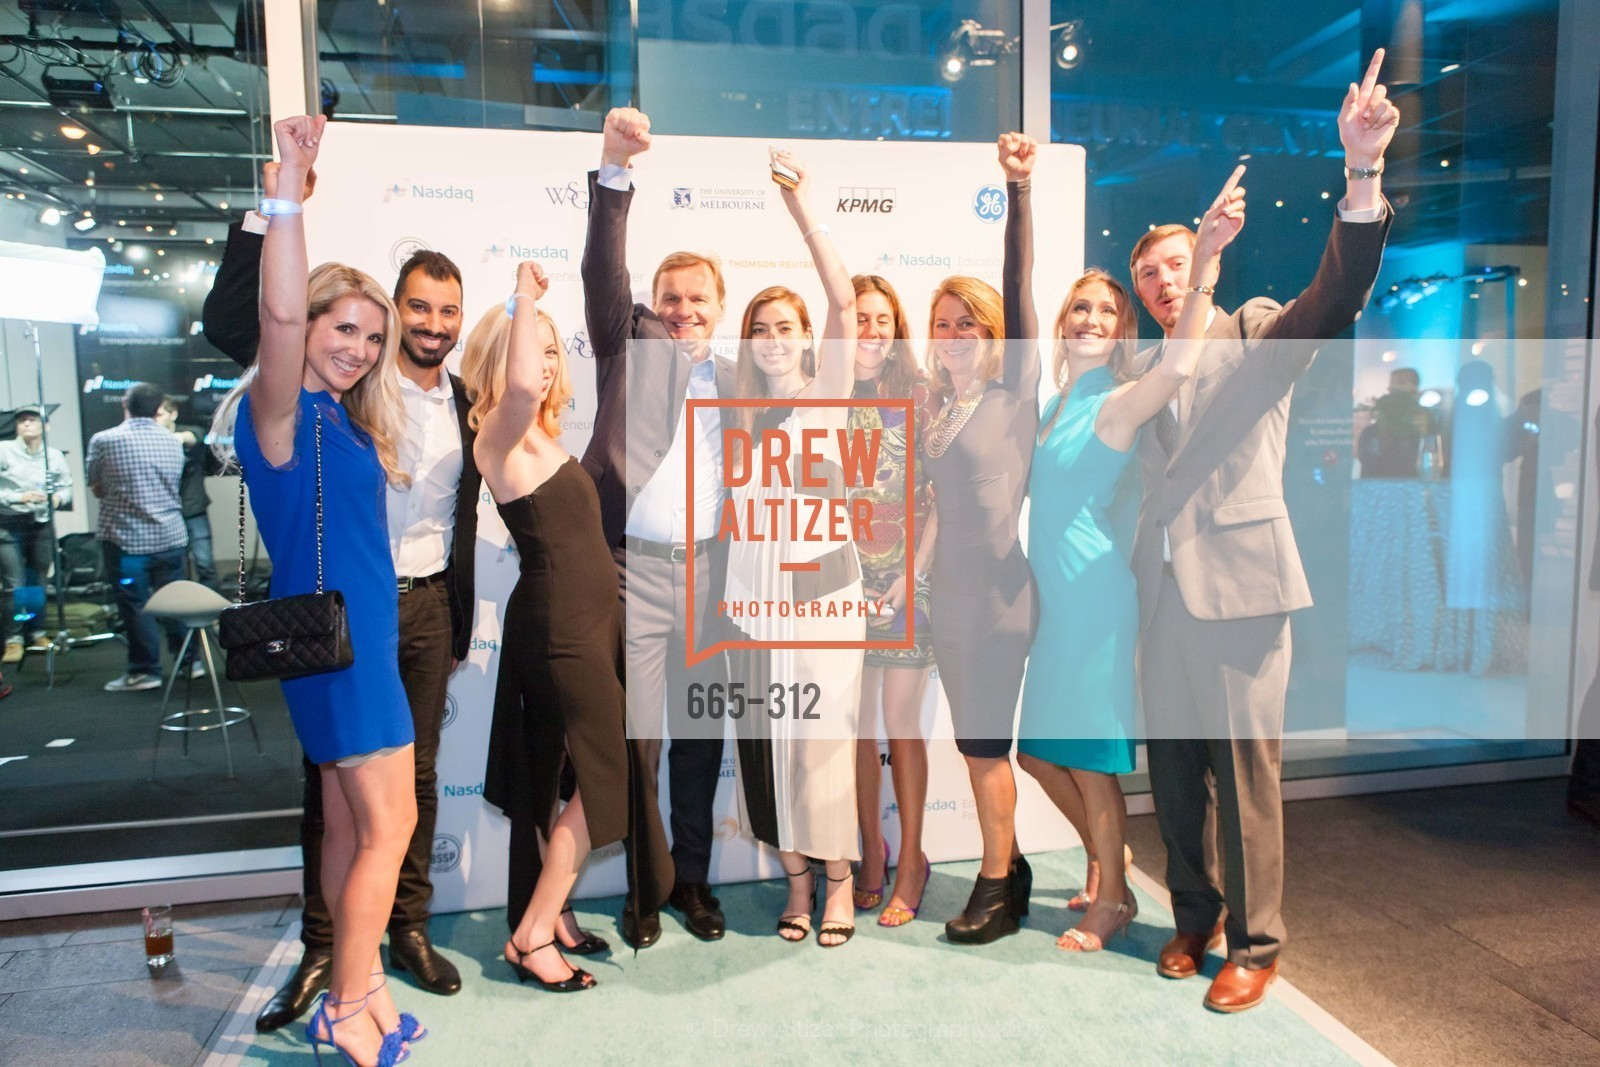 Samantha Hartwell, Mitch Haya, Nicole Torzine, Bruce Aust, Cristina Tramutola, Navi Haya, Alana Yana, Colin Mahen, Nasdaq 25th Anniversary, Foundry III. 505 Howard Street, September 24th, 2015,Drew Altizer, Drew Altizer Photography, full-service agency, private events, San Francisco photographer, photographer california